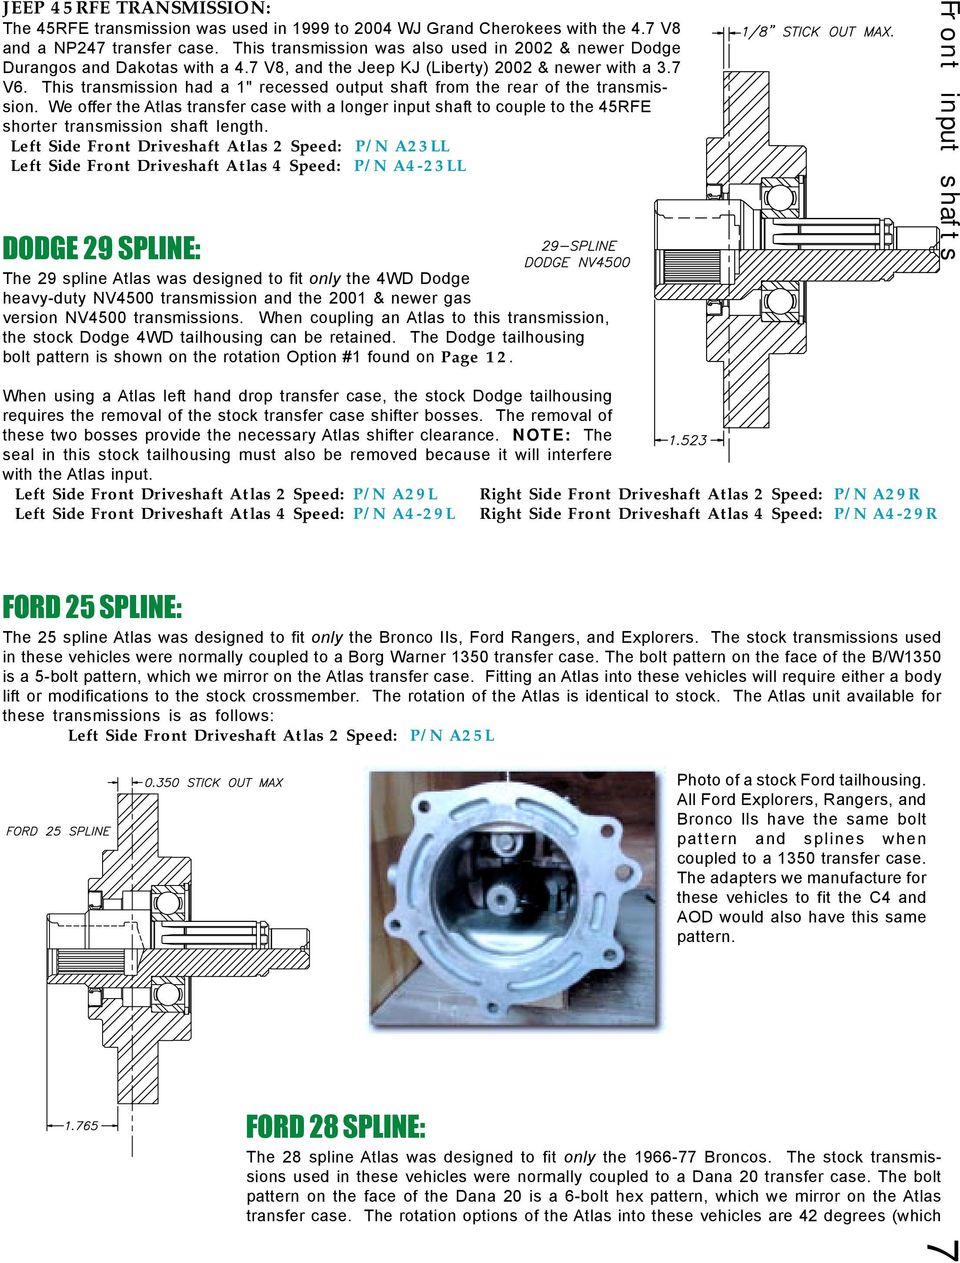 Atlas Specifications Pdf Nv4500 5 Speed Transmission Case Diagram This Had A 1 Recessed Output Shaft From The Rear Of